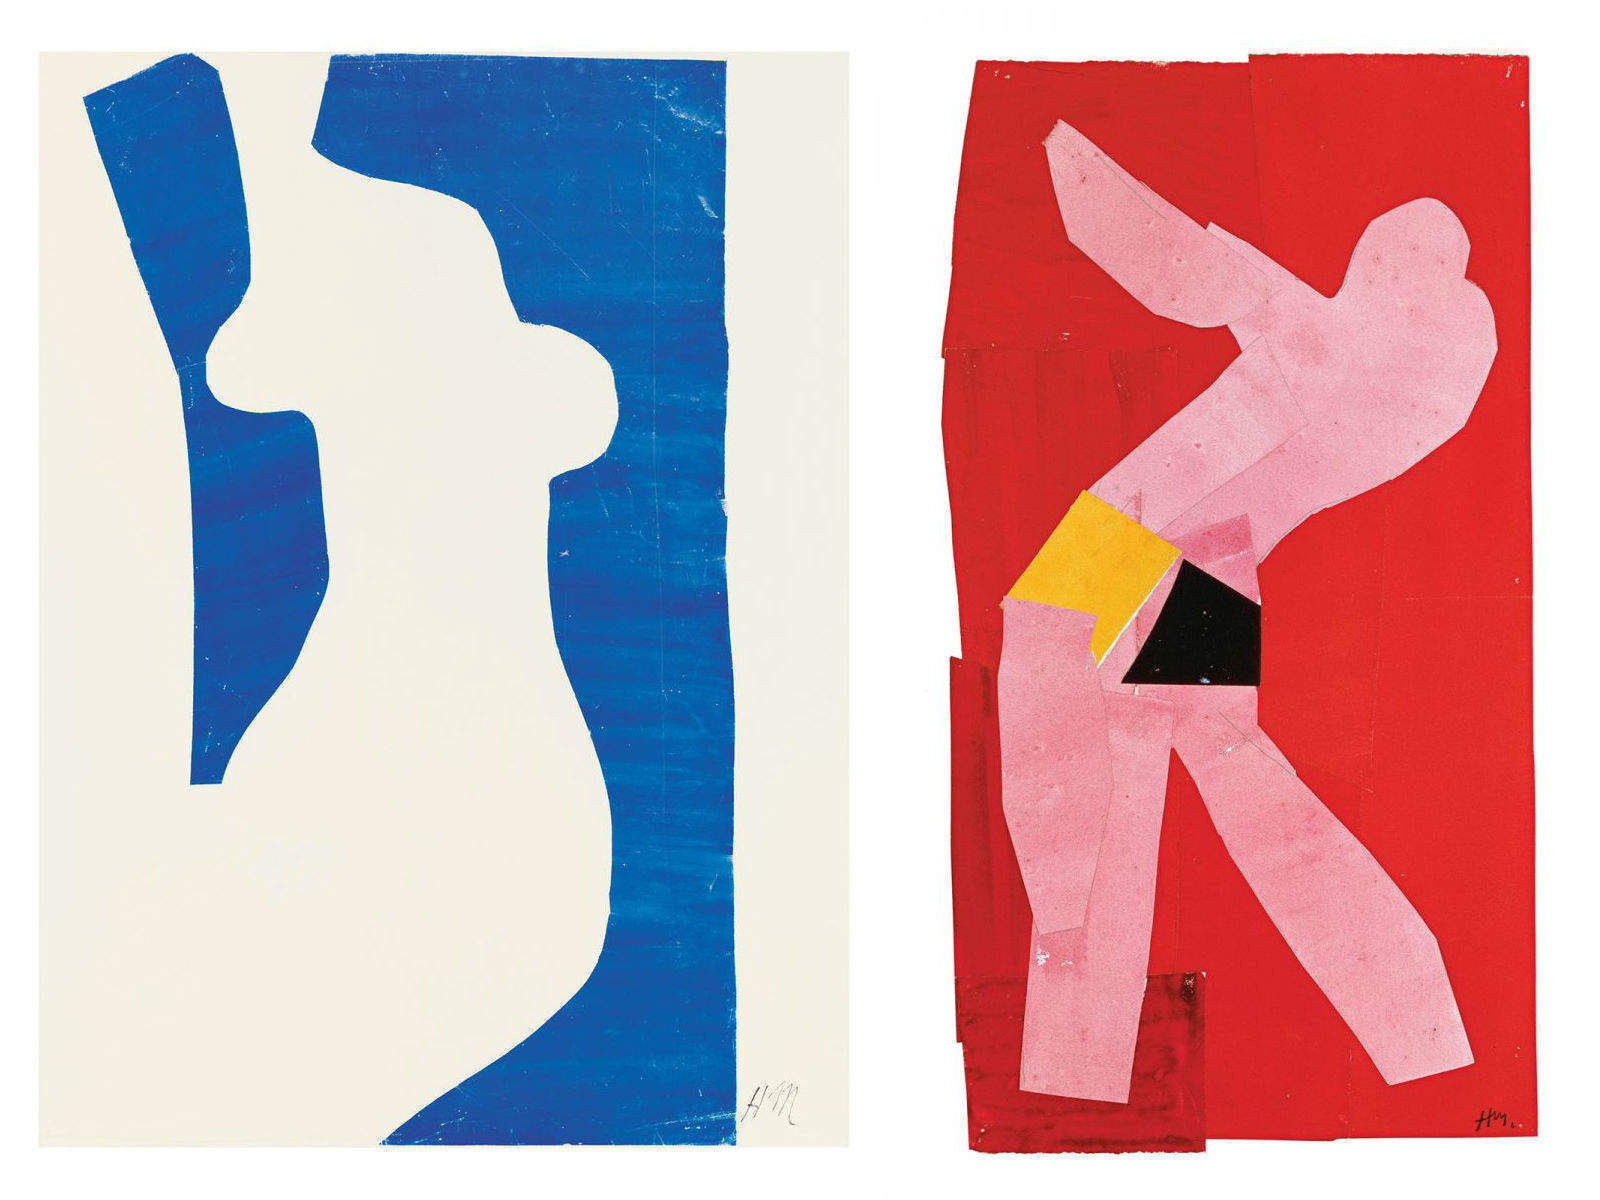 Henri Matisse: the hand that takes you for a ride